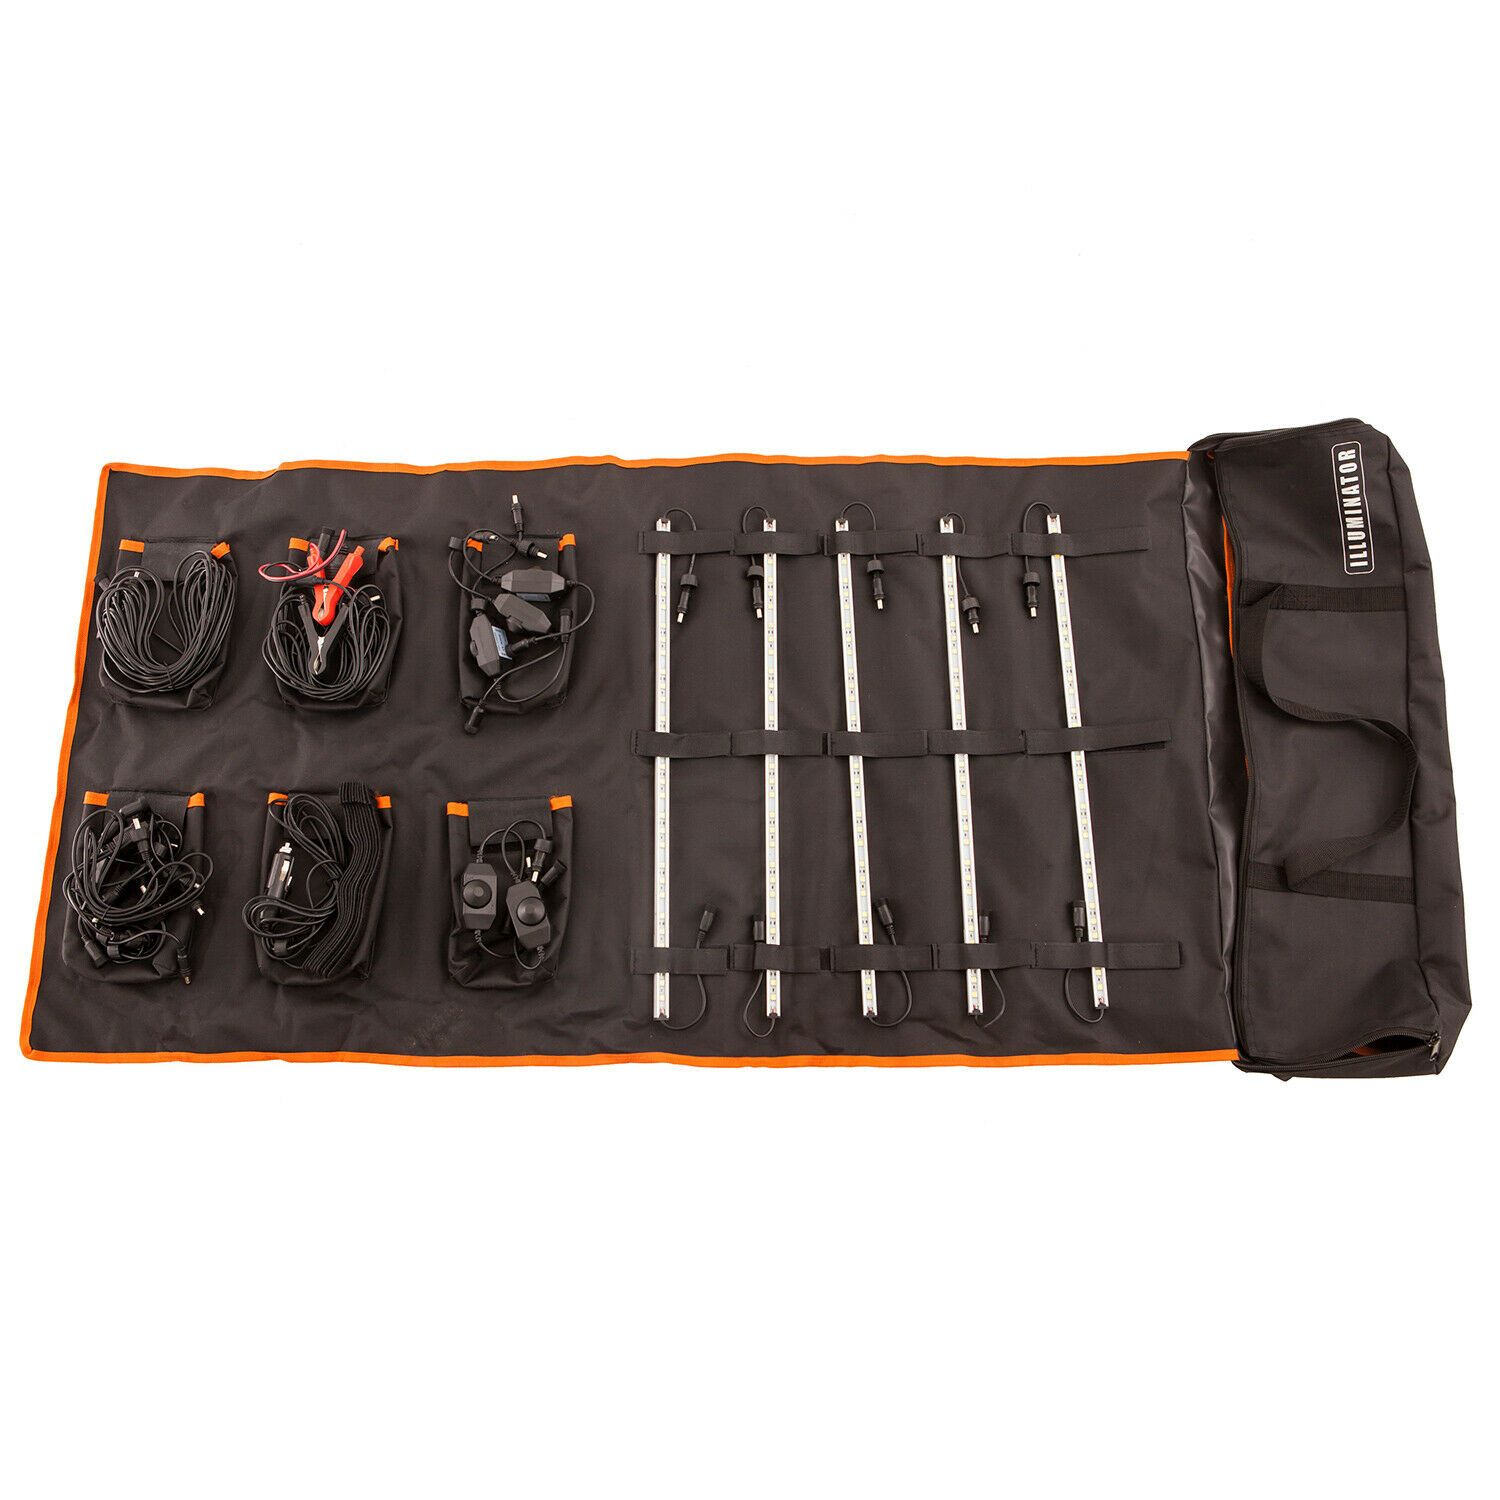 Adventure Kings 5 Bar Camp Light Kit | LED | Dimmers | Velcro & Magnet